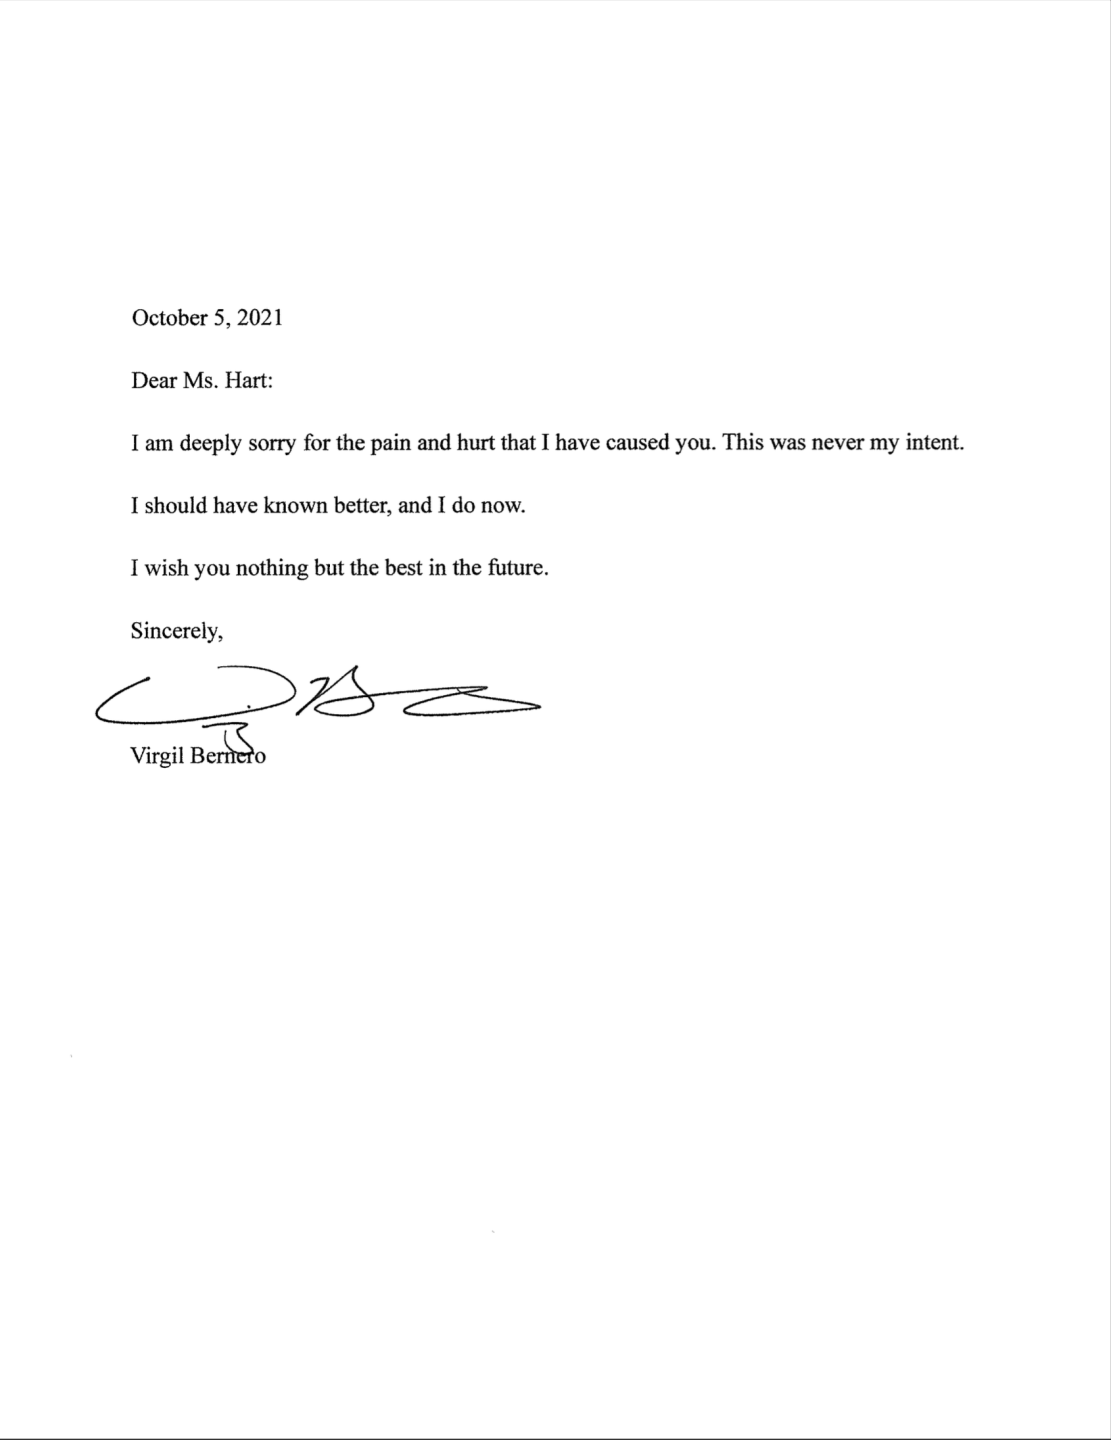 The settlement included this apology letter from Bernero.